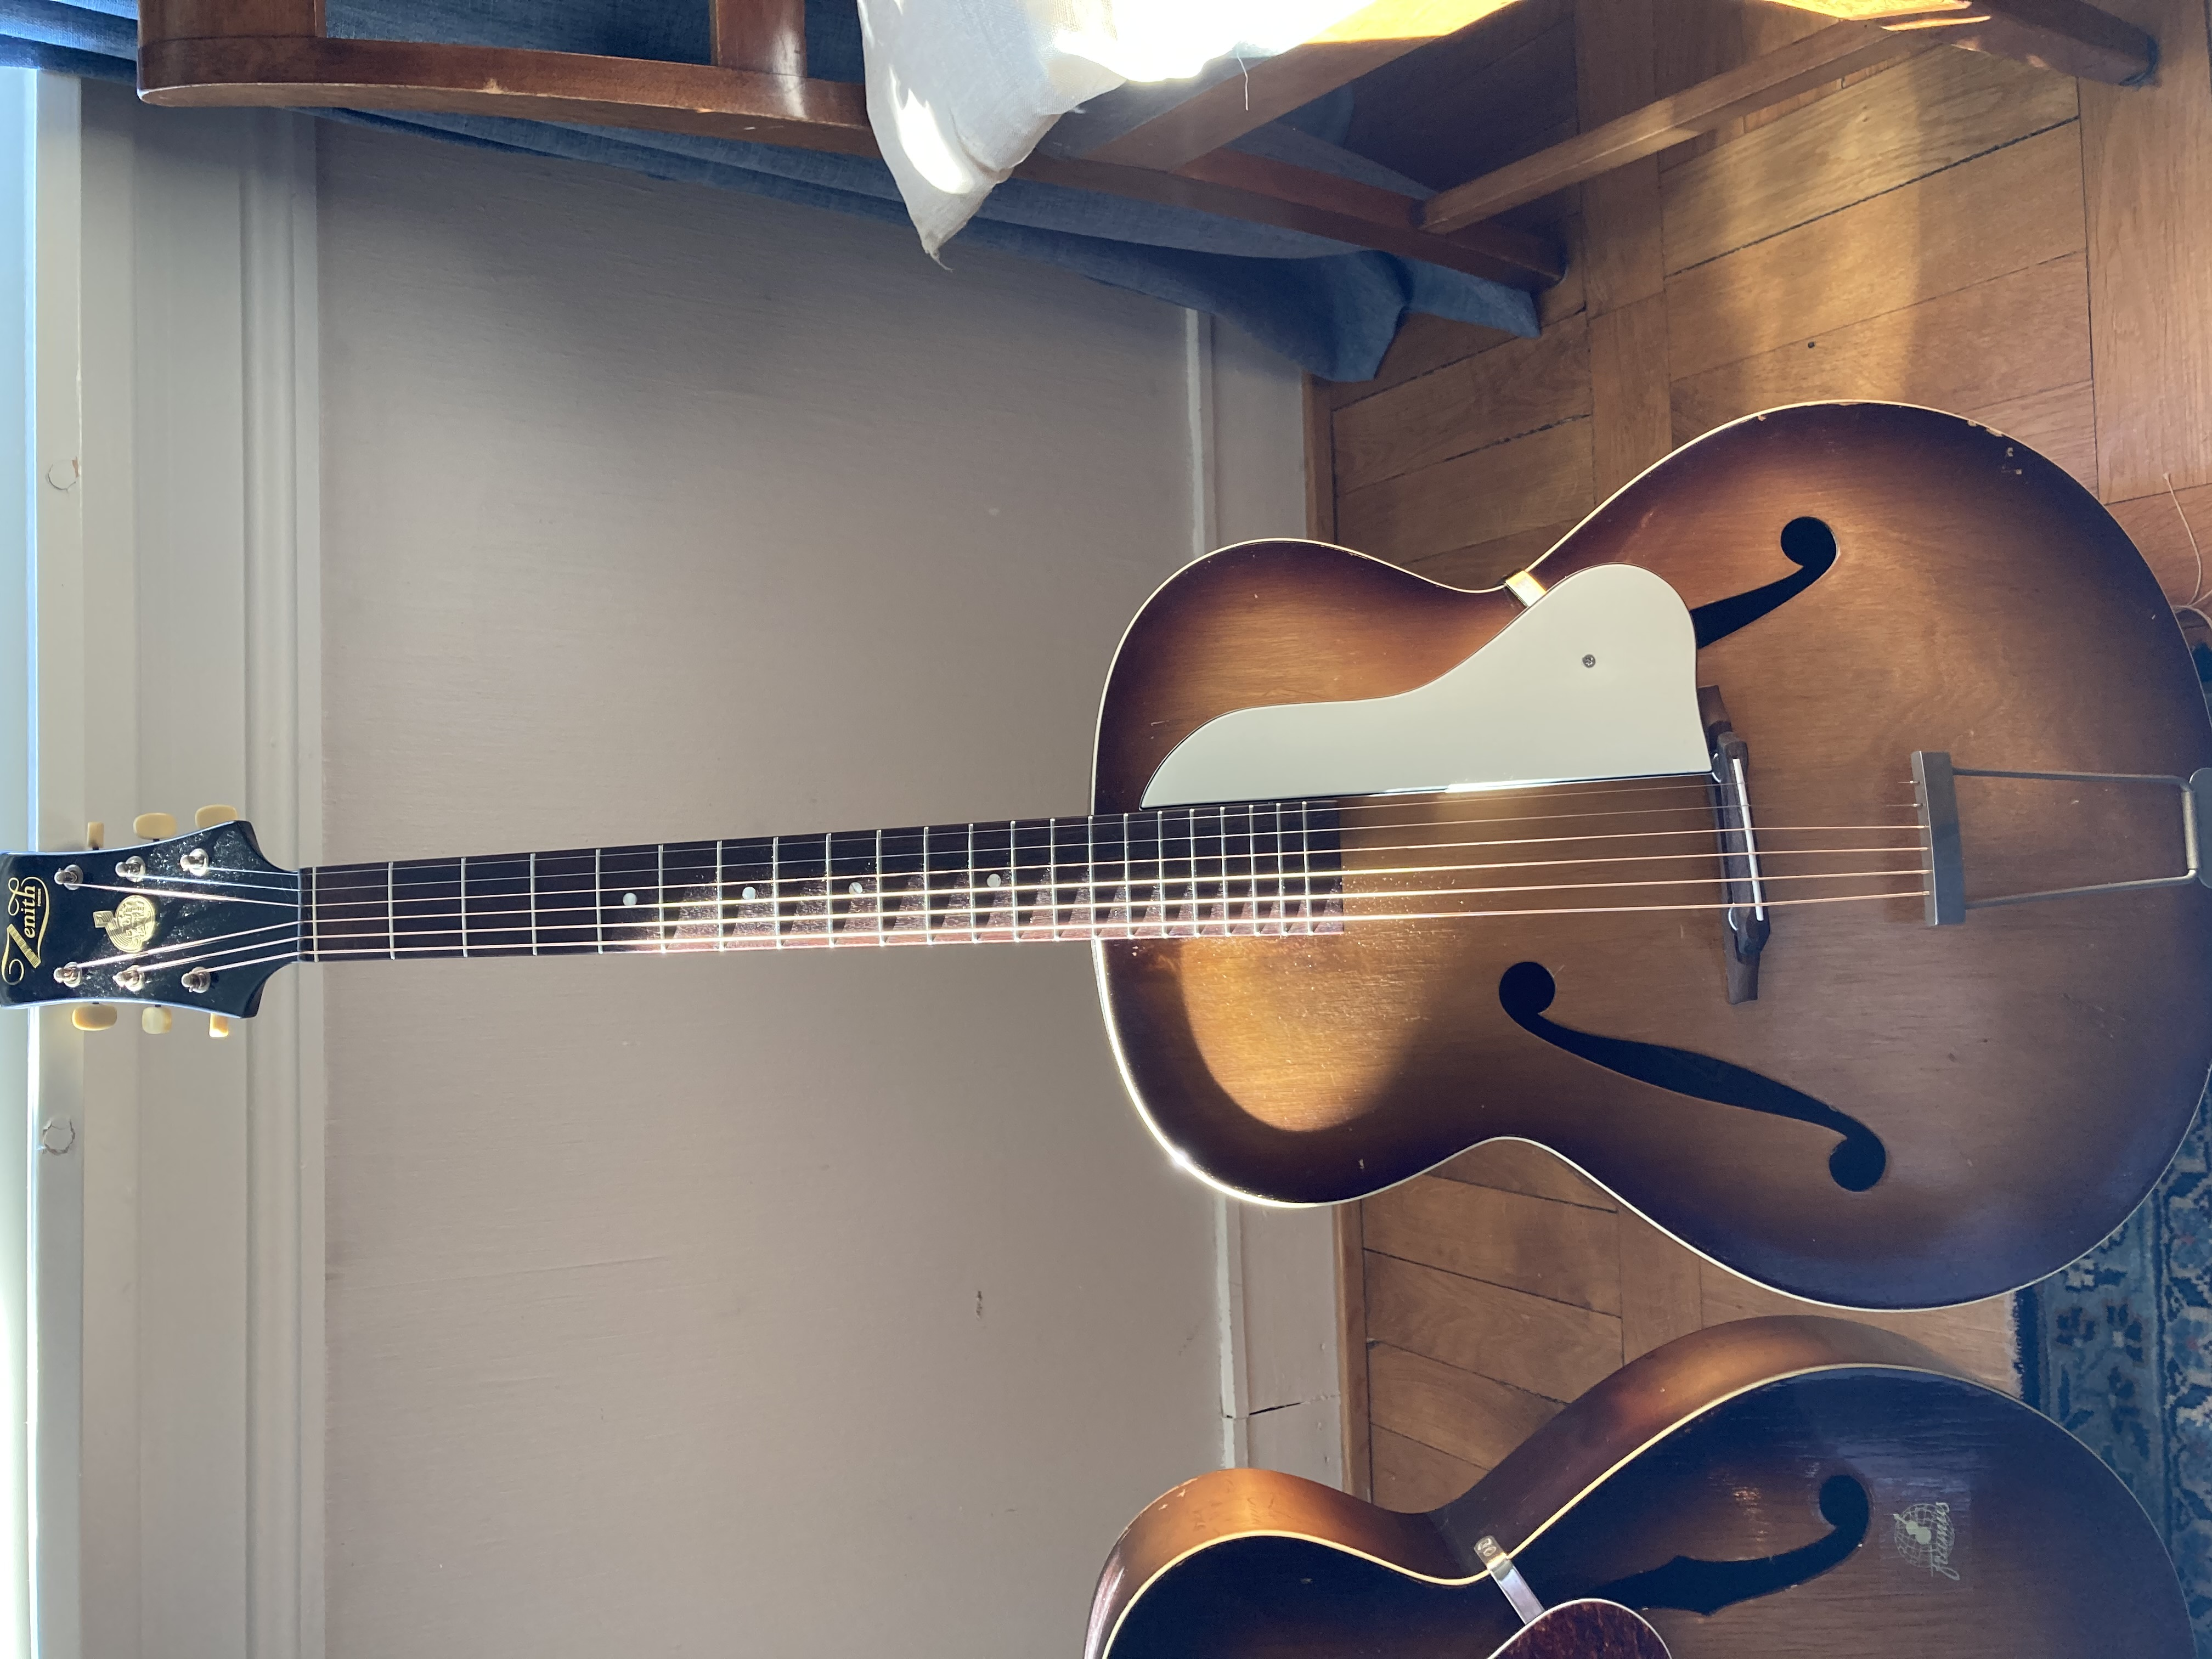 ALBUM: Framus Zenith Models No. 17 and No. 21